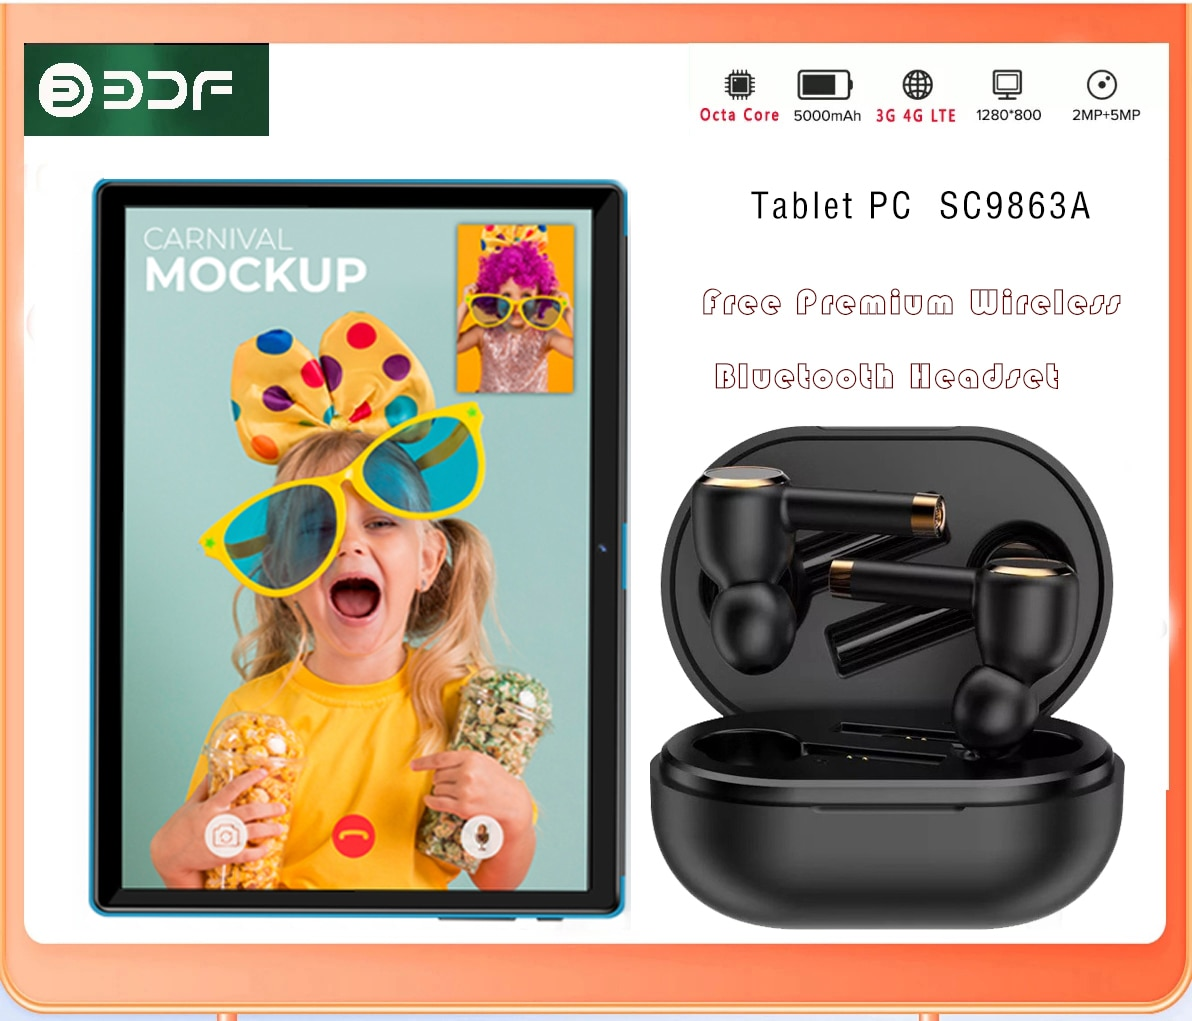 New Buy Tablet 10.1 Inch Tablet PC Android 4G Octa Core 4GB RAM 64GB ROM Tablets Android 10 Dual Wifi Type-C +Bluetooth Headset